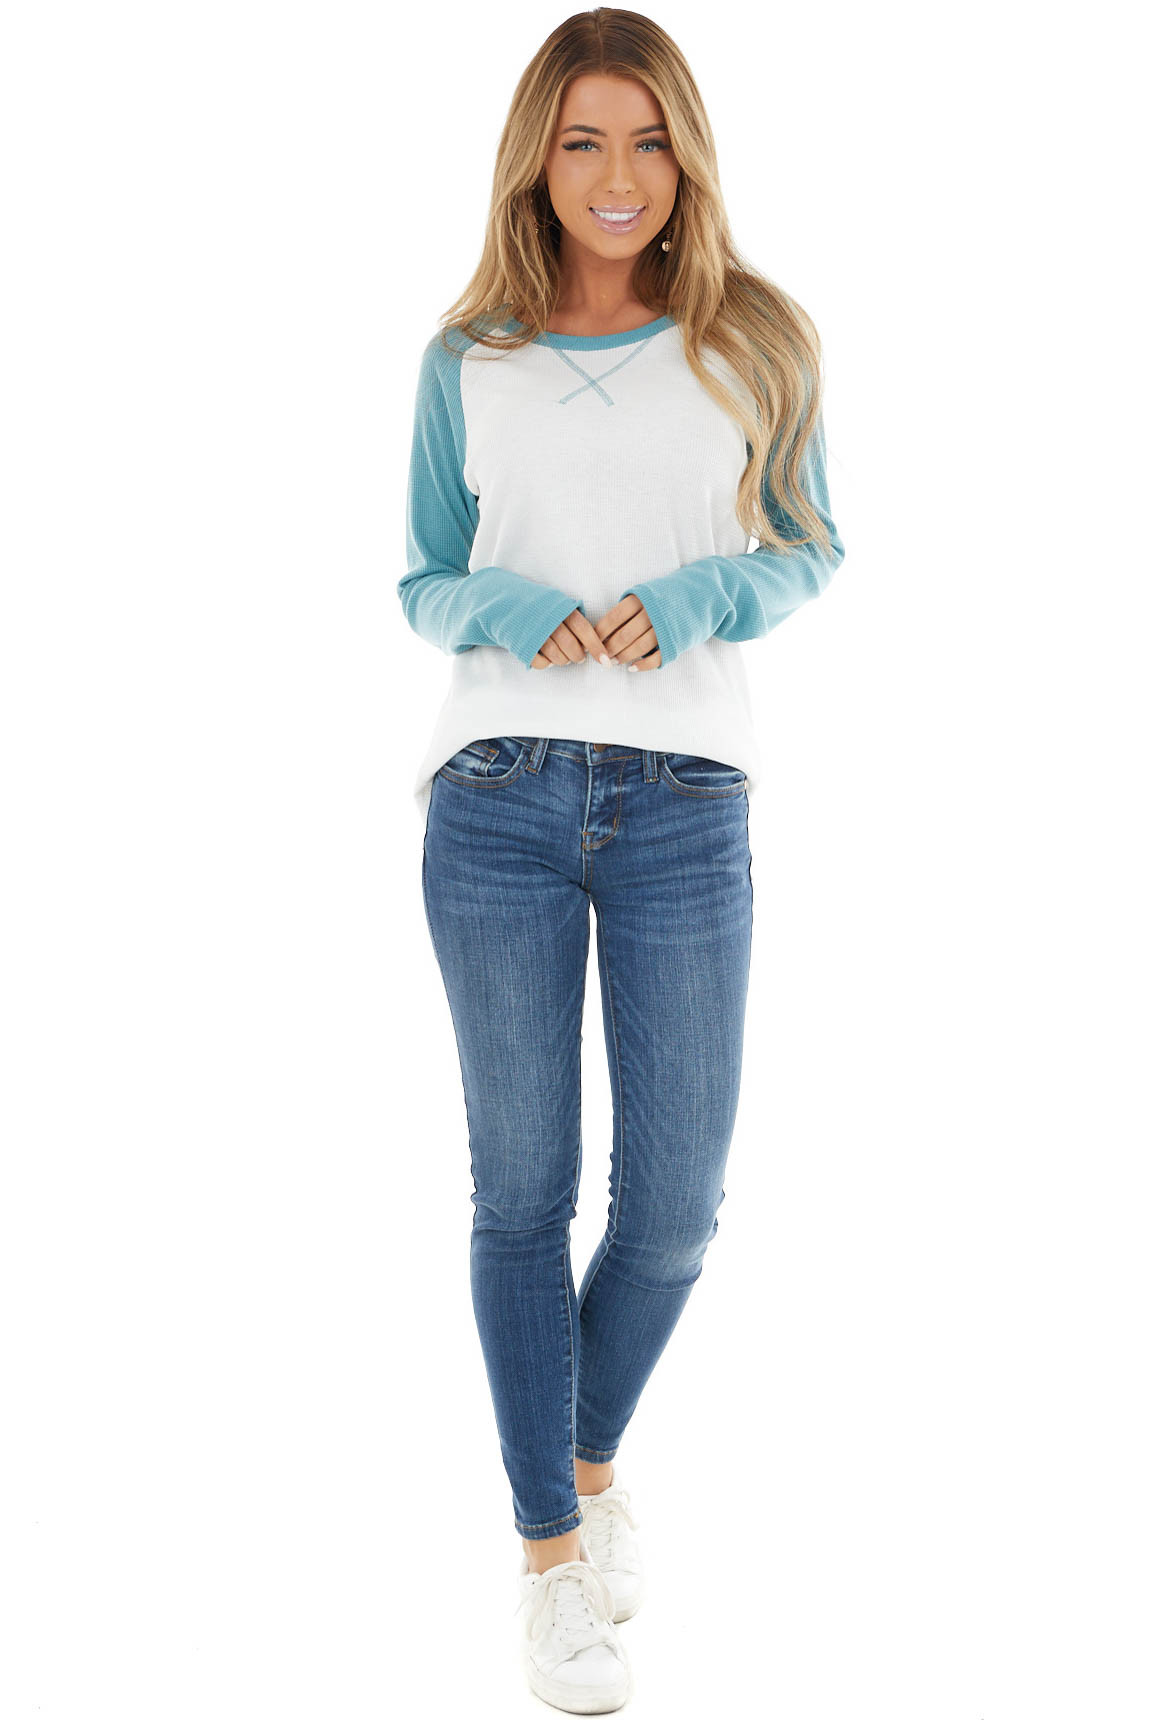 Dusty Sage And Ivory Long Sleeve Top With X Stitch Detail